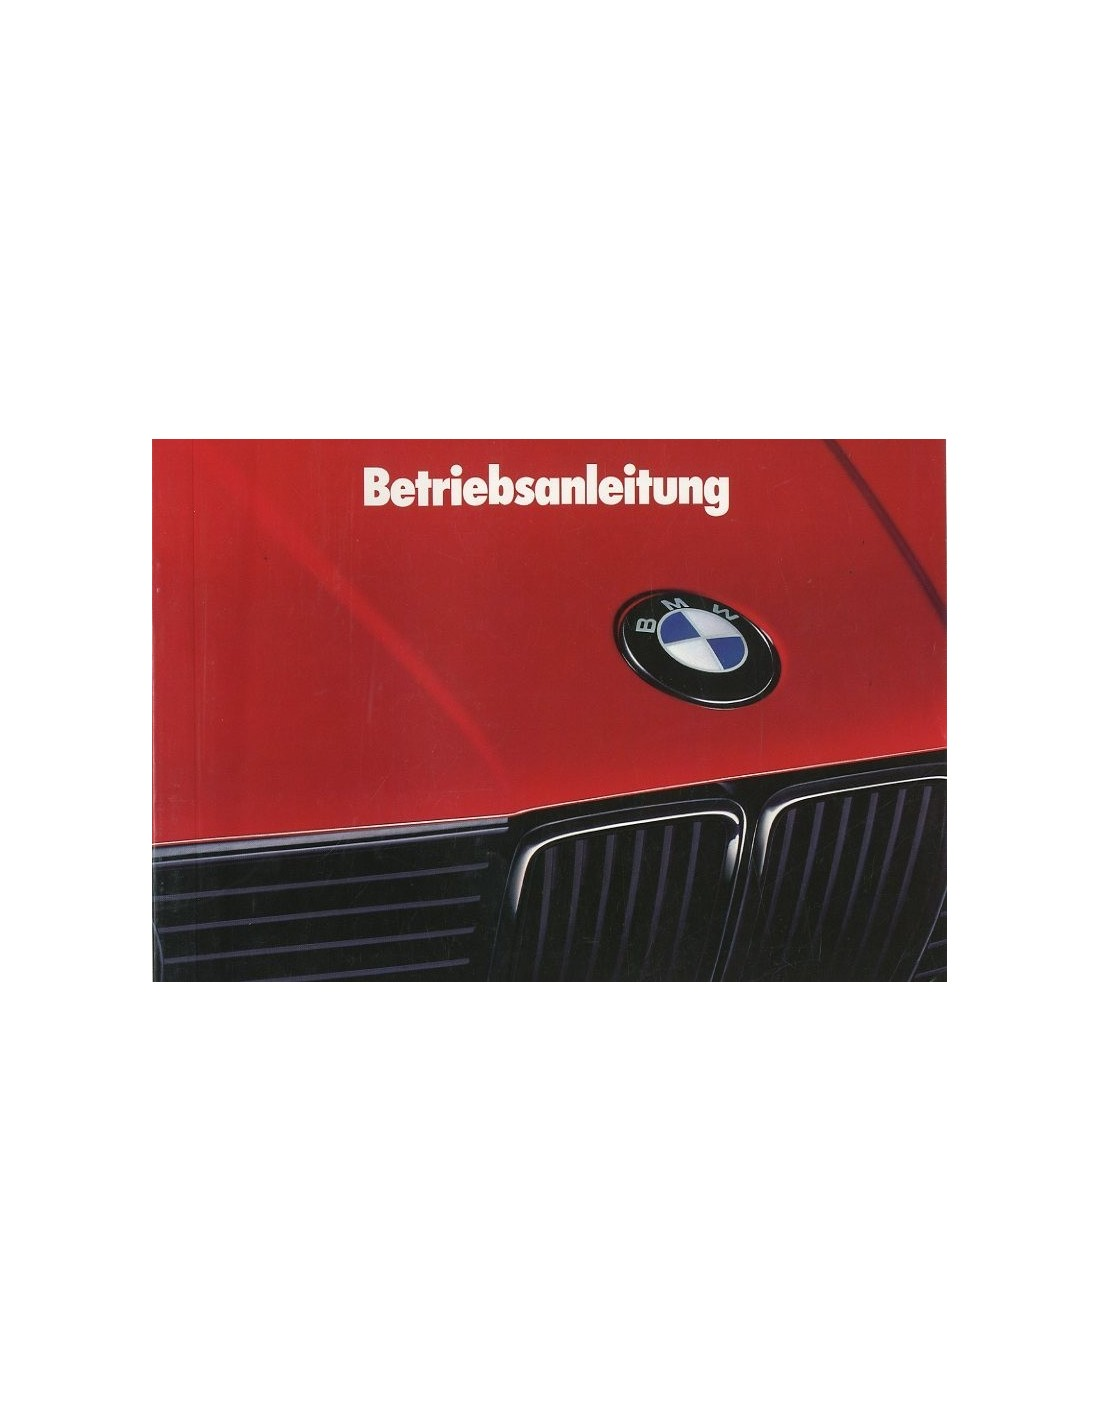 download bmw 3 series handbook owners manual free backupport. Black Bedroom Furniture Sets. Home Design Ideas